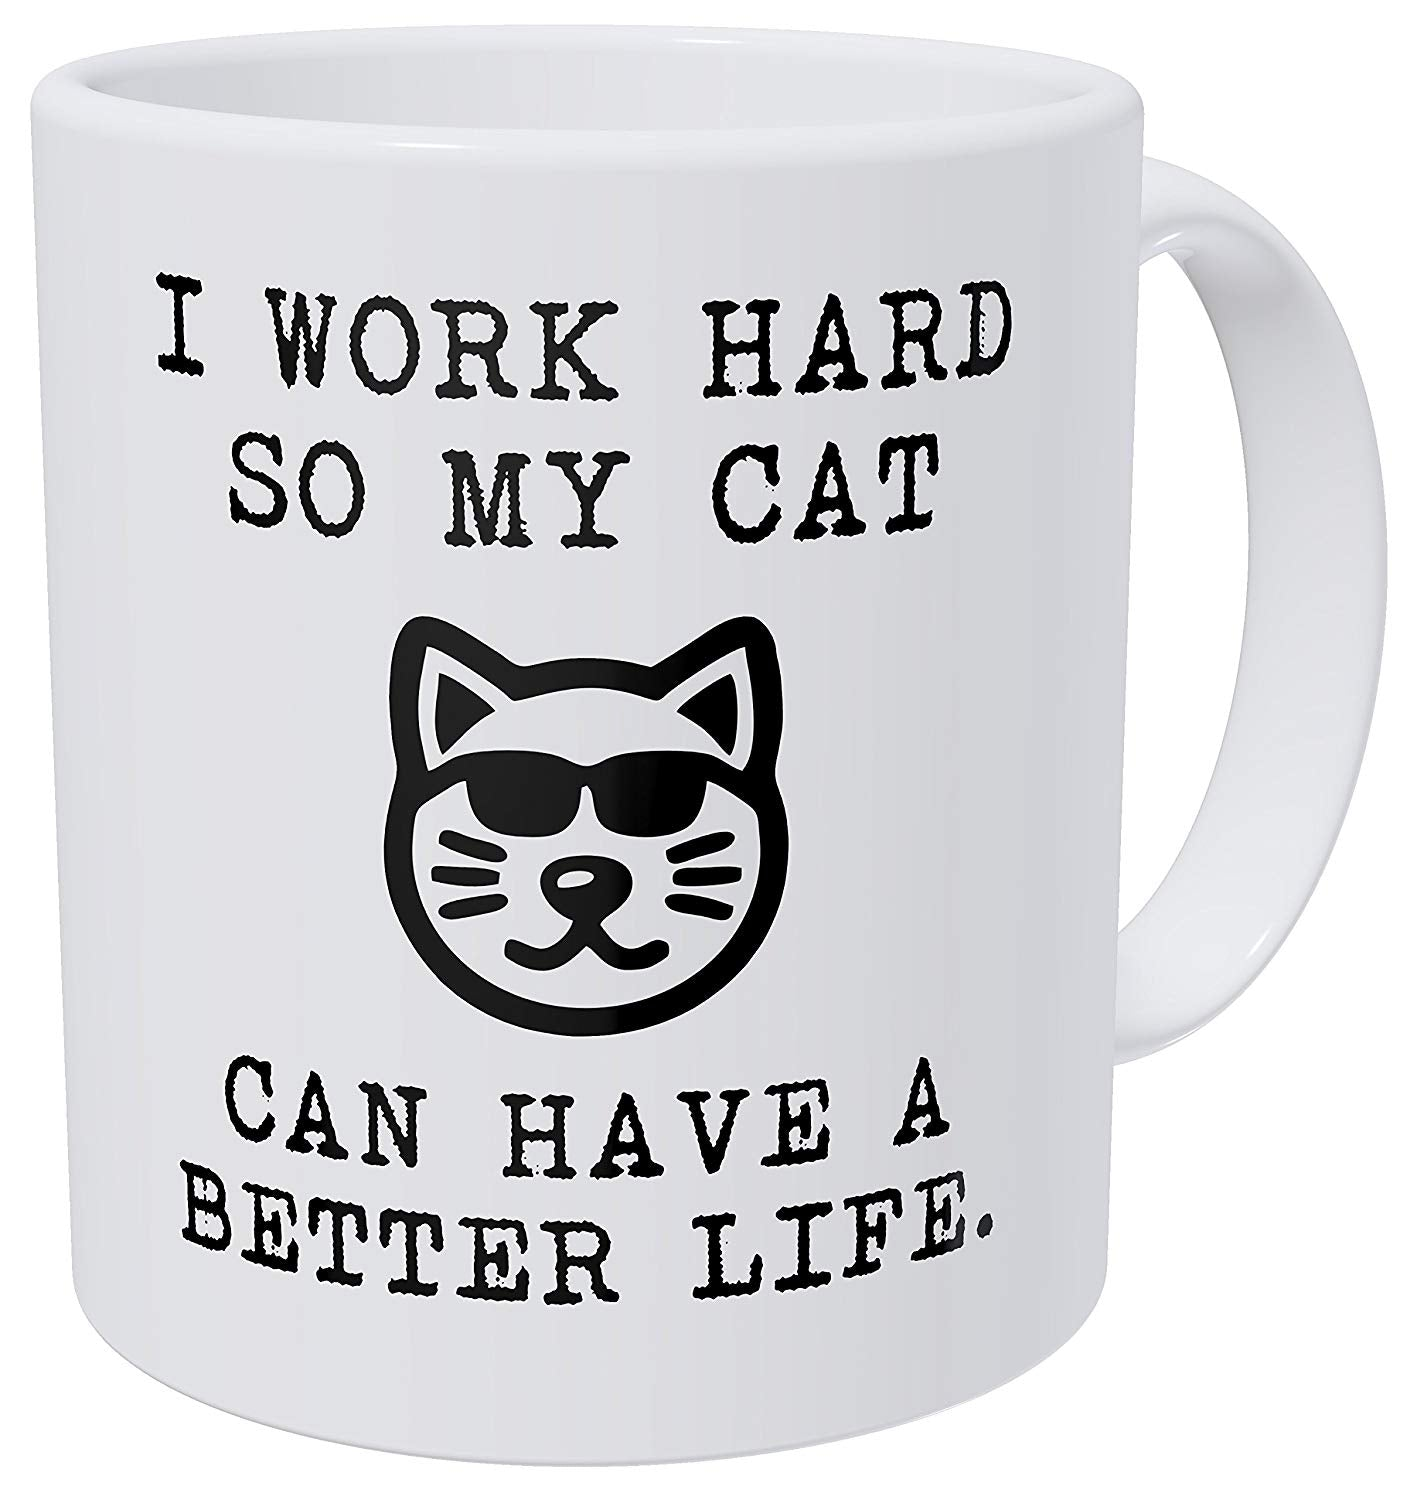 Aviento Funny Coffee Mug I Work Hard So My Cat Can Have A Better Life 11 Ounces 490 Grams Ultra White AAA